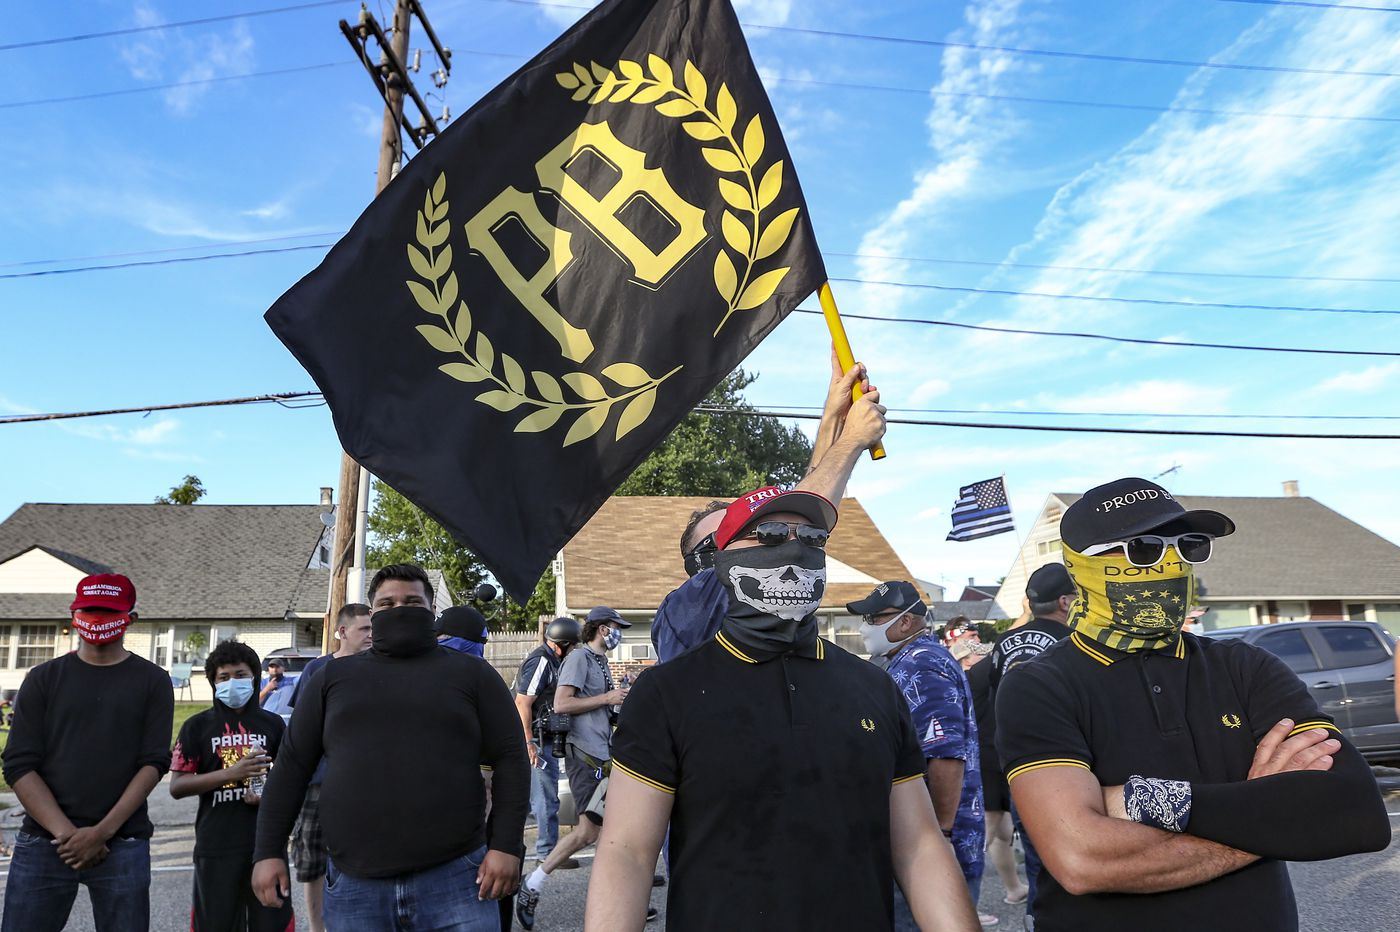 Proud Boys appear to be outside Mike Pence speech at Philadelphia police  union lodge